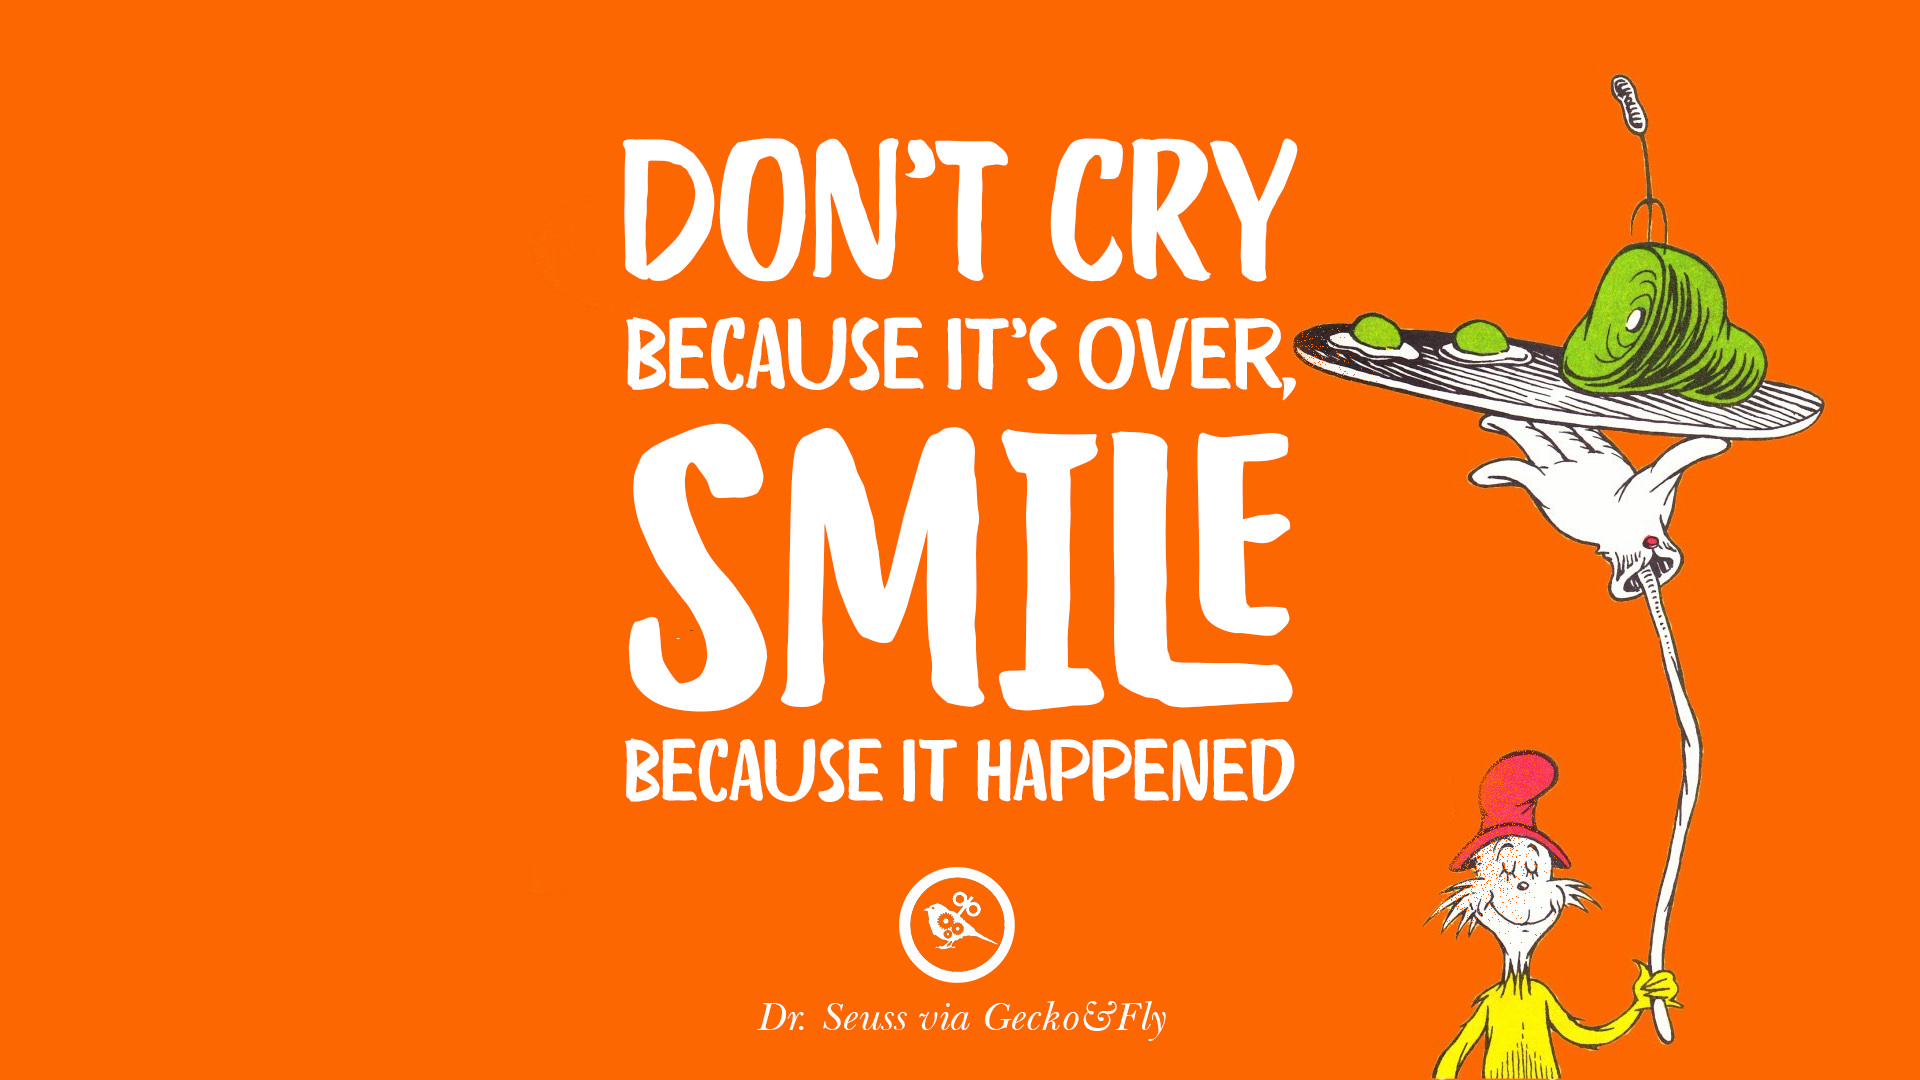 Donu0027t Cry Because Itu0027s Over, Smile Because It Happened. U2013 Dr Seuss